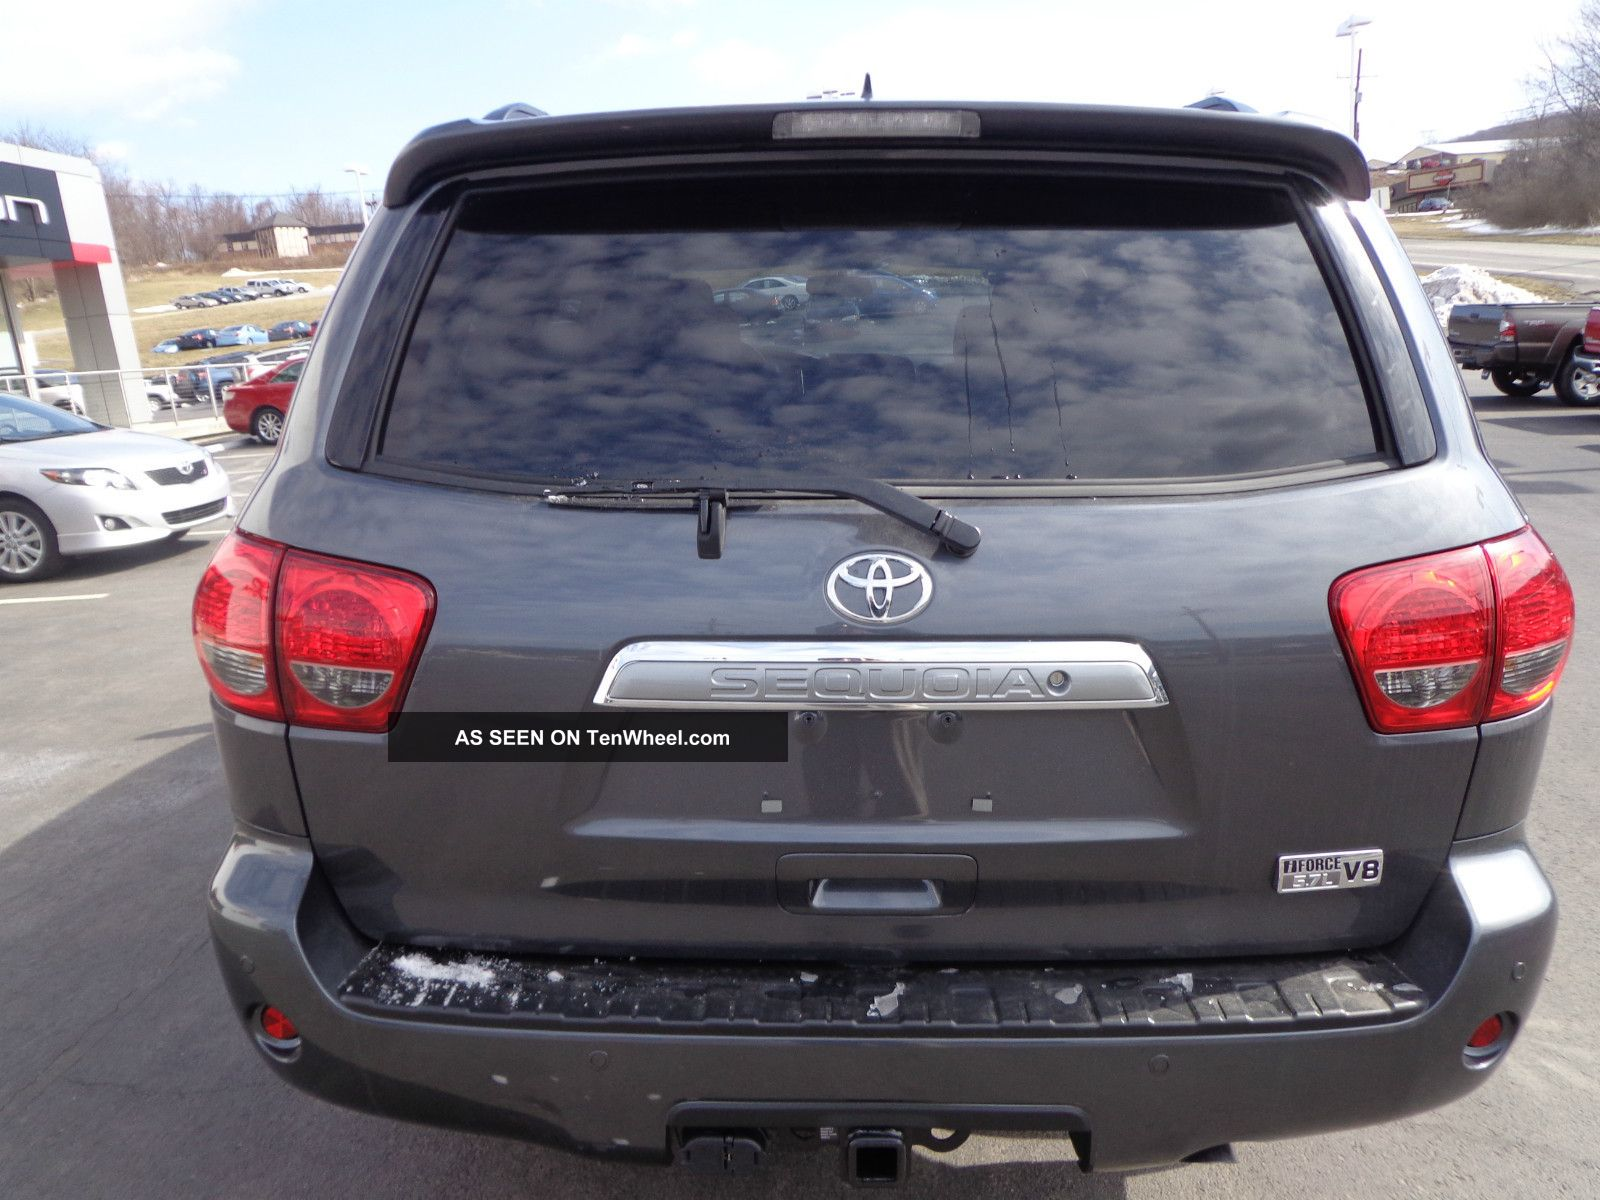 toyota 4runner captains chairs bedroom chair price 2013 sequoia platinum 4x4 rear camera 3rd row seat 4wd r